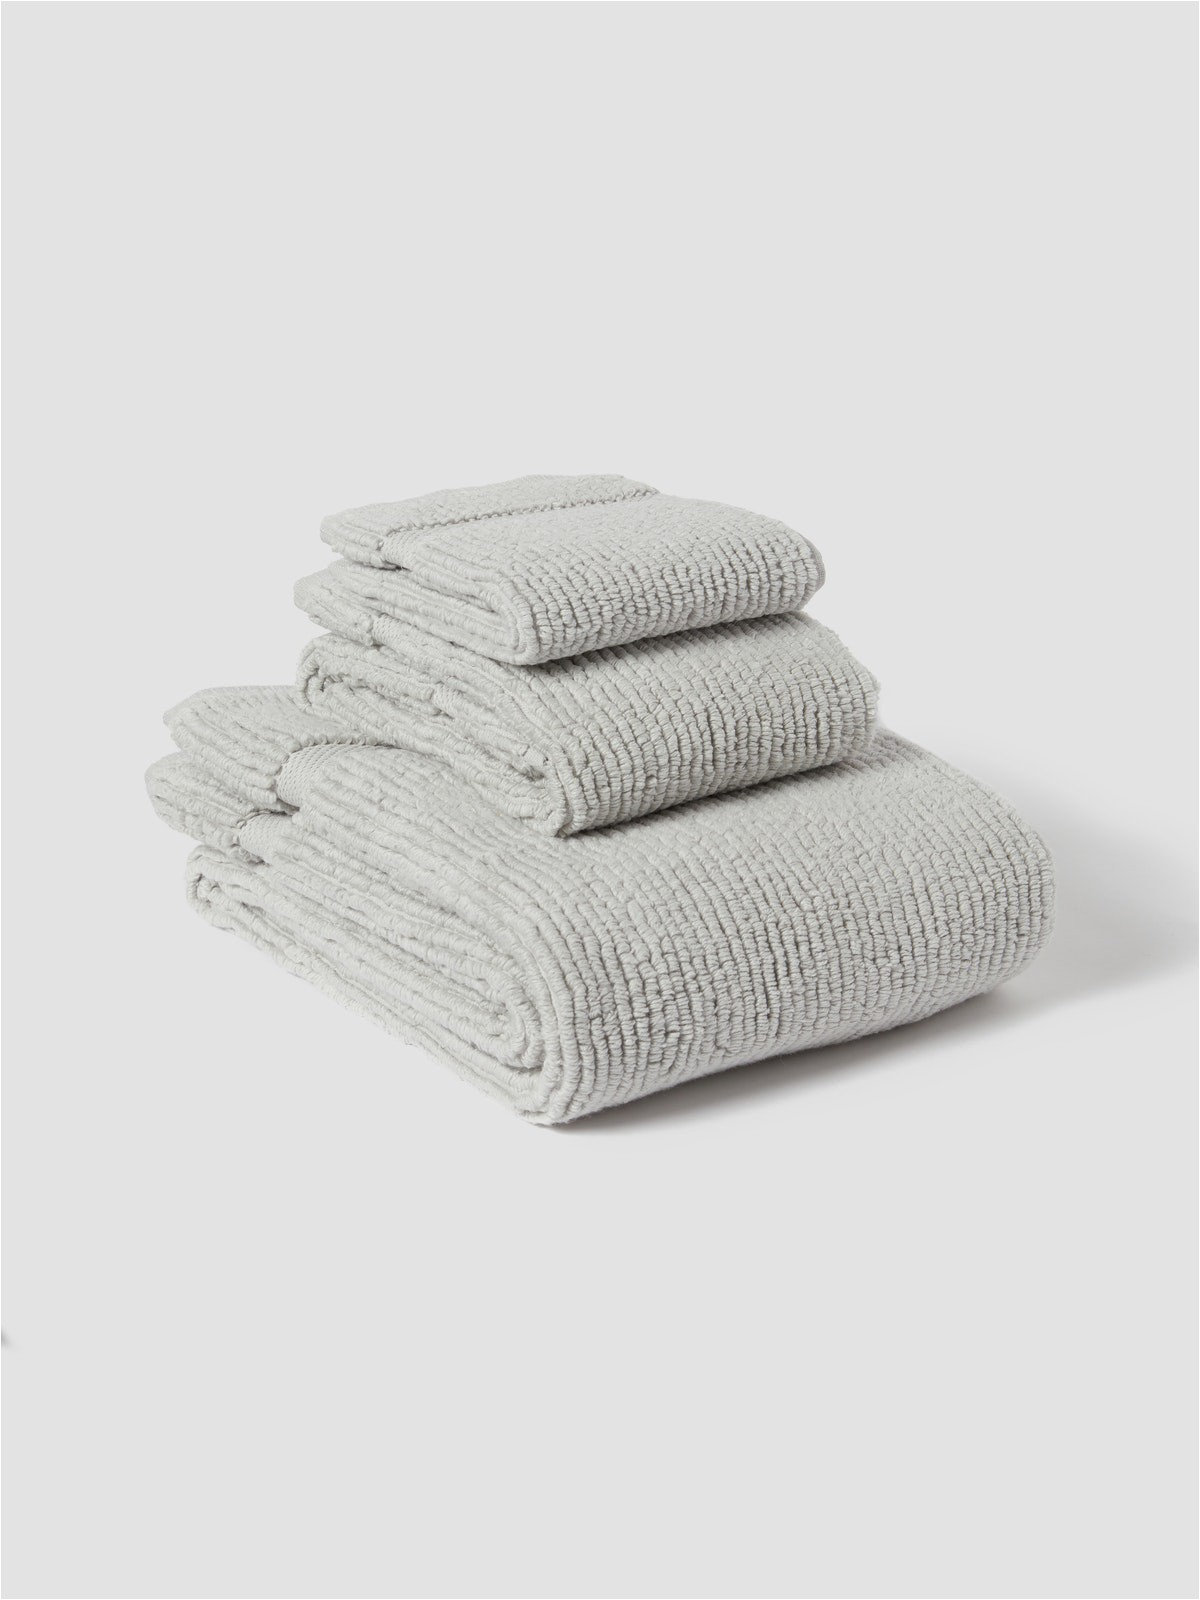 Kassatex athens Bath Rug Mateo towels